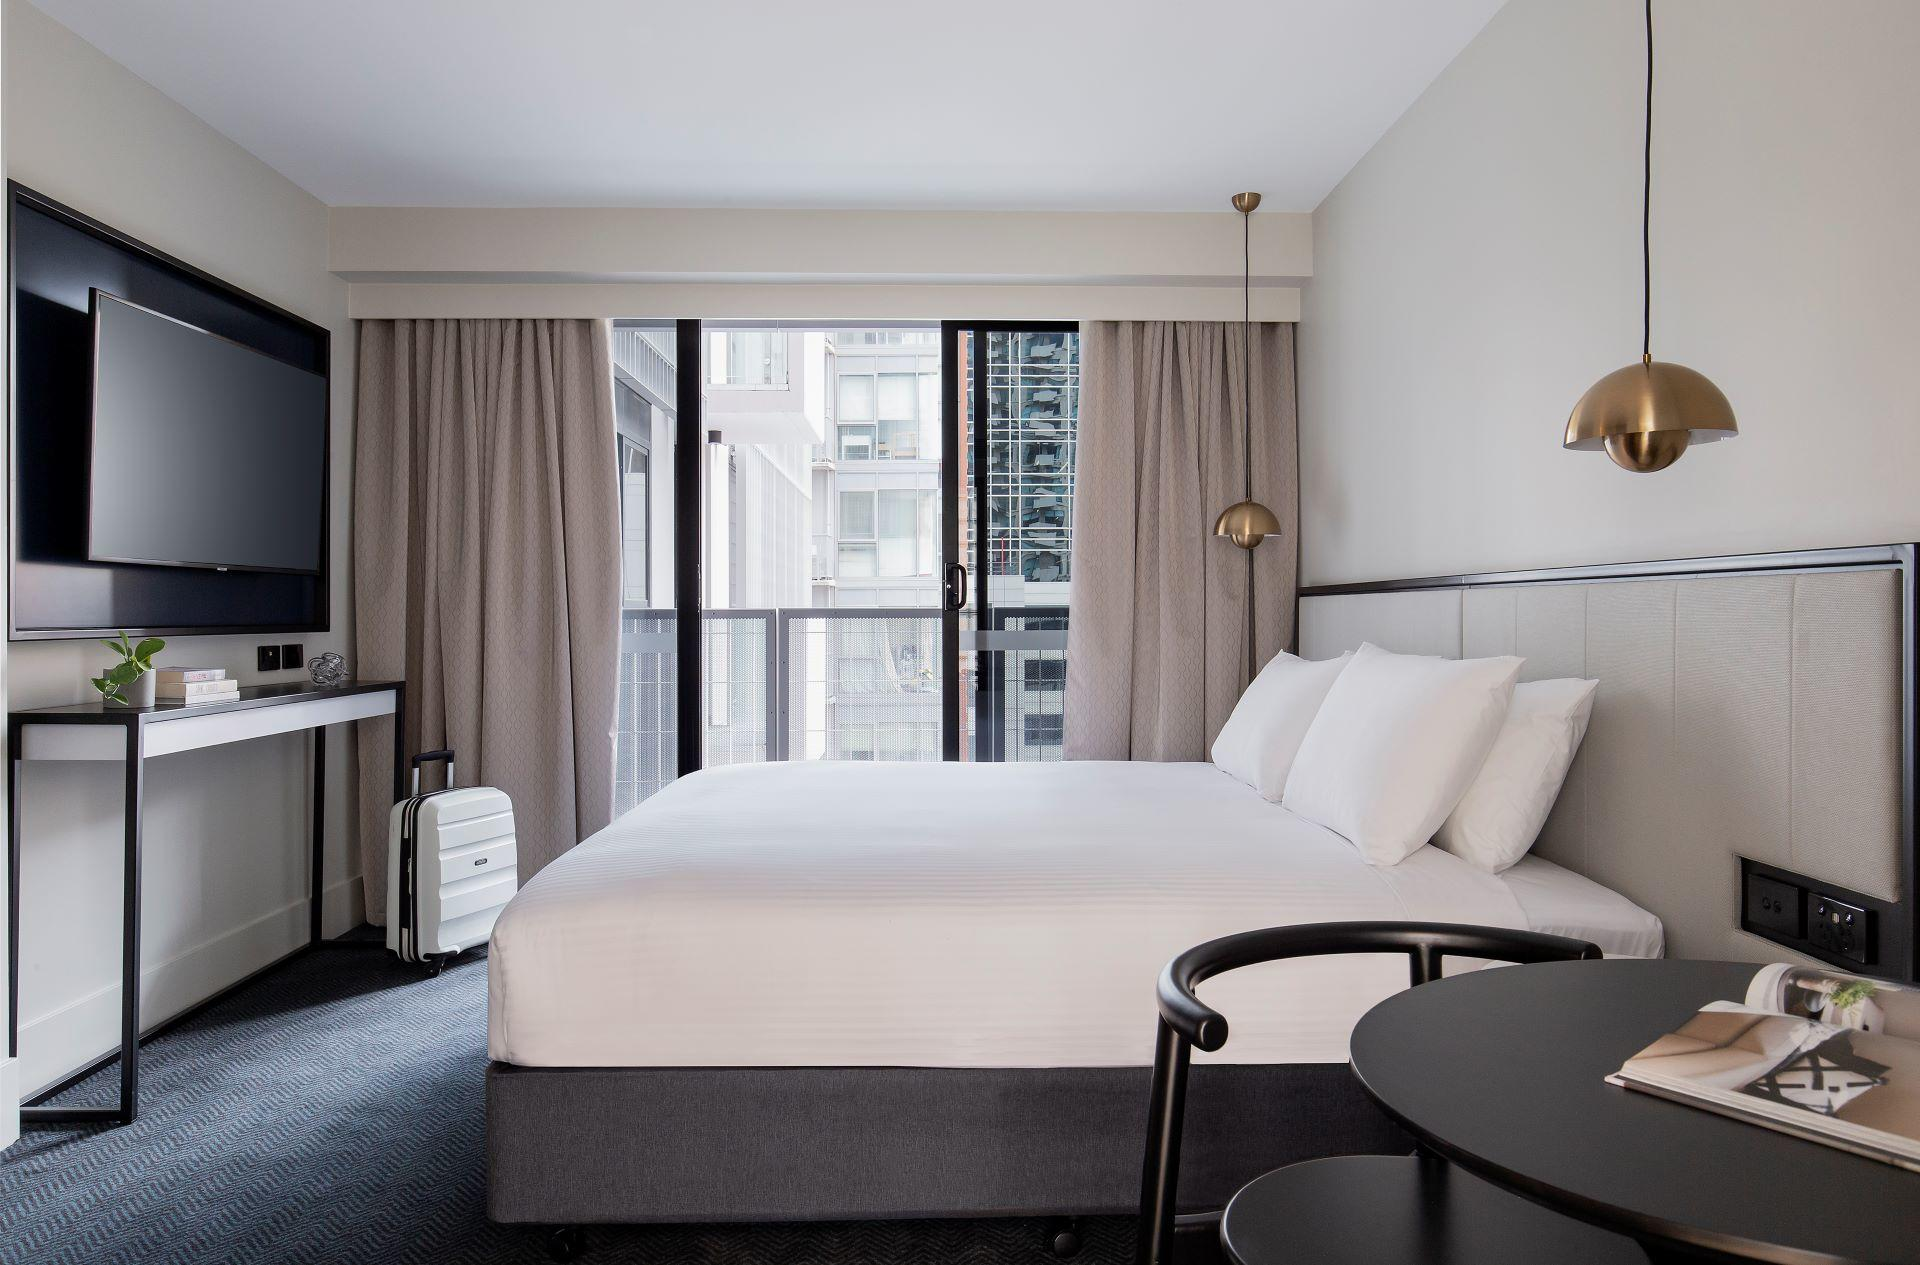 Brady Hotels Jones Lane - studio apartment